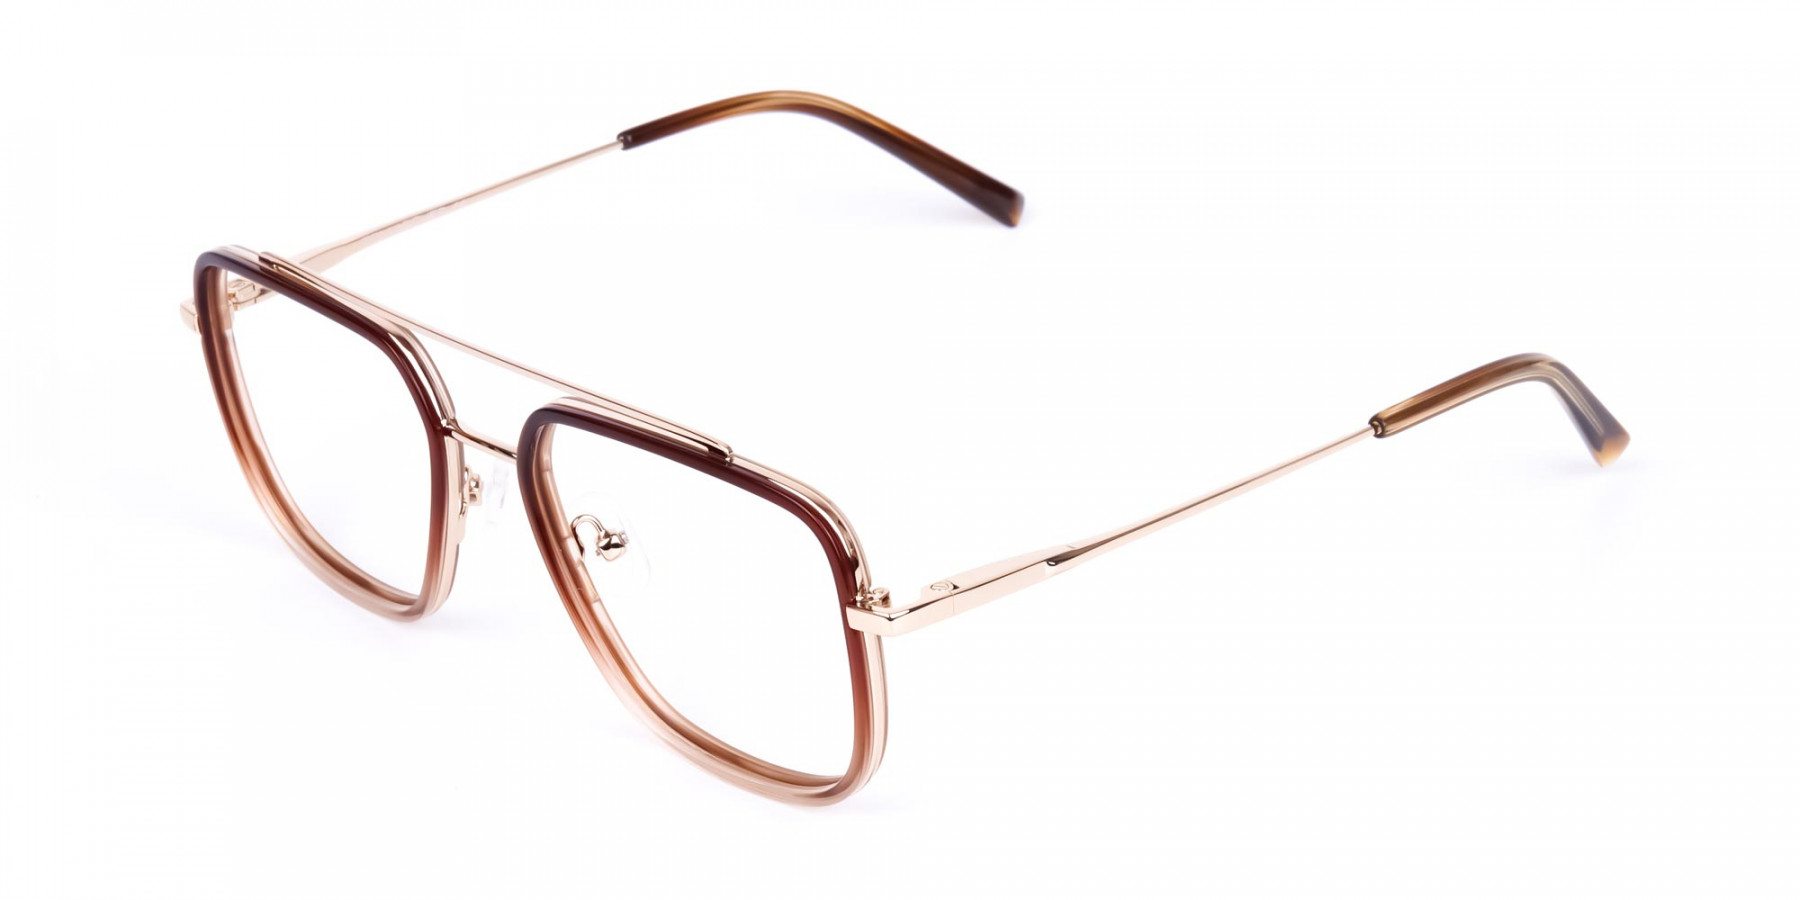 Brown-and-Gold-Aviator-Glasses-1